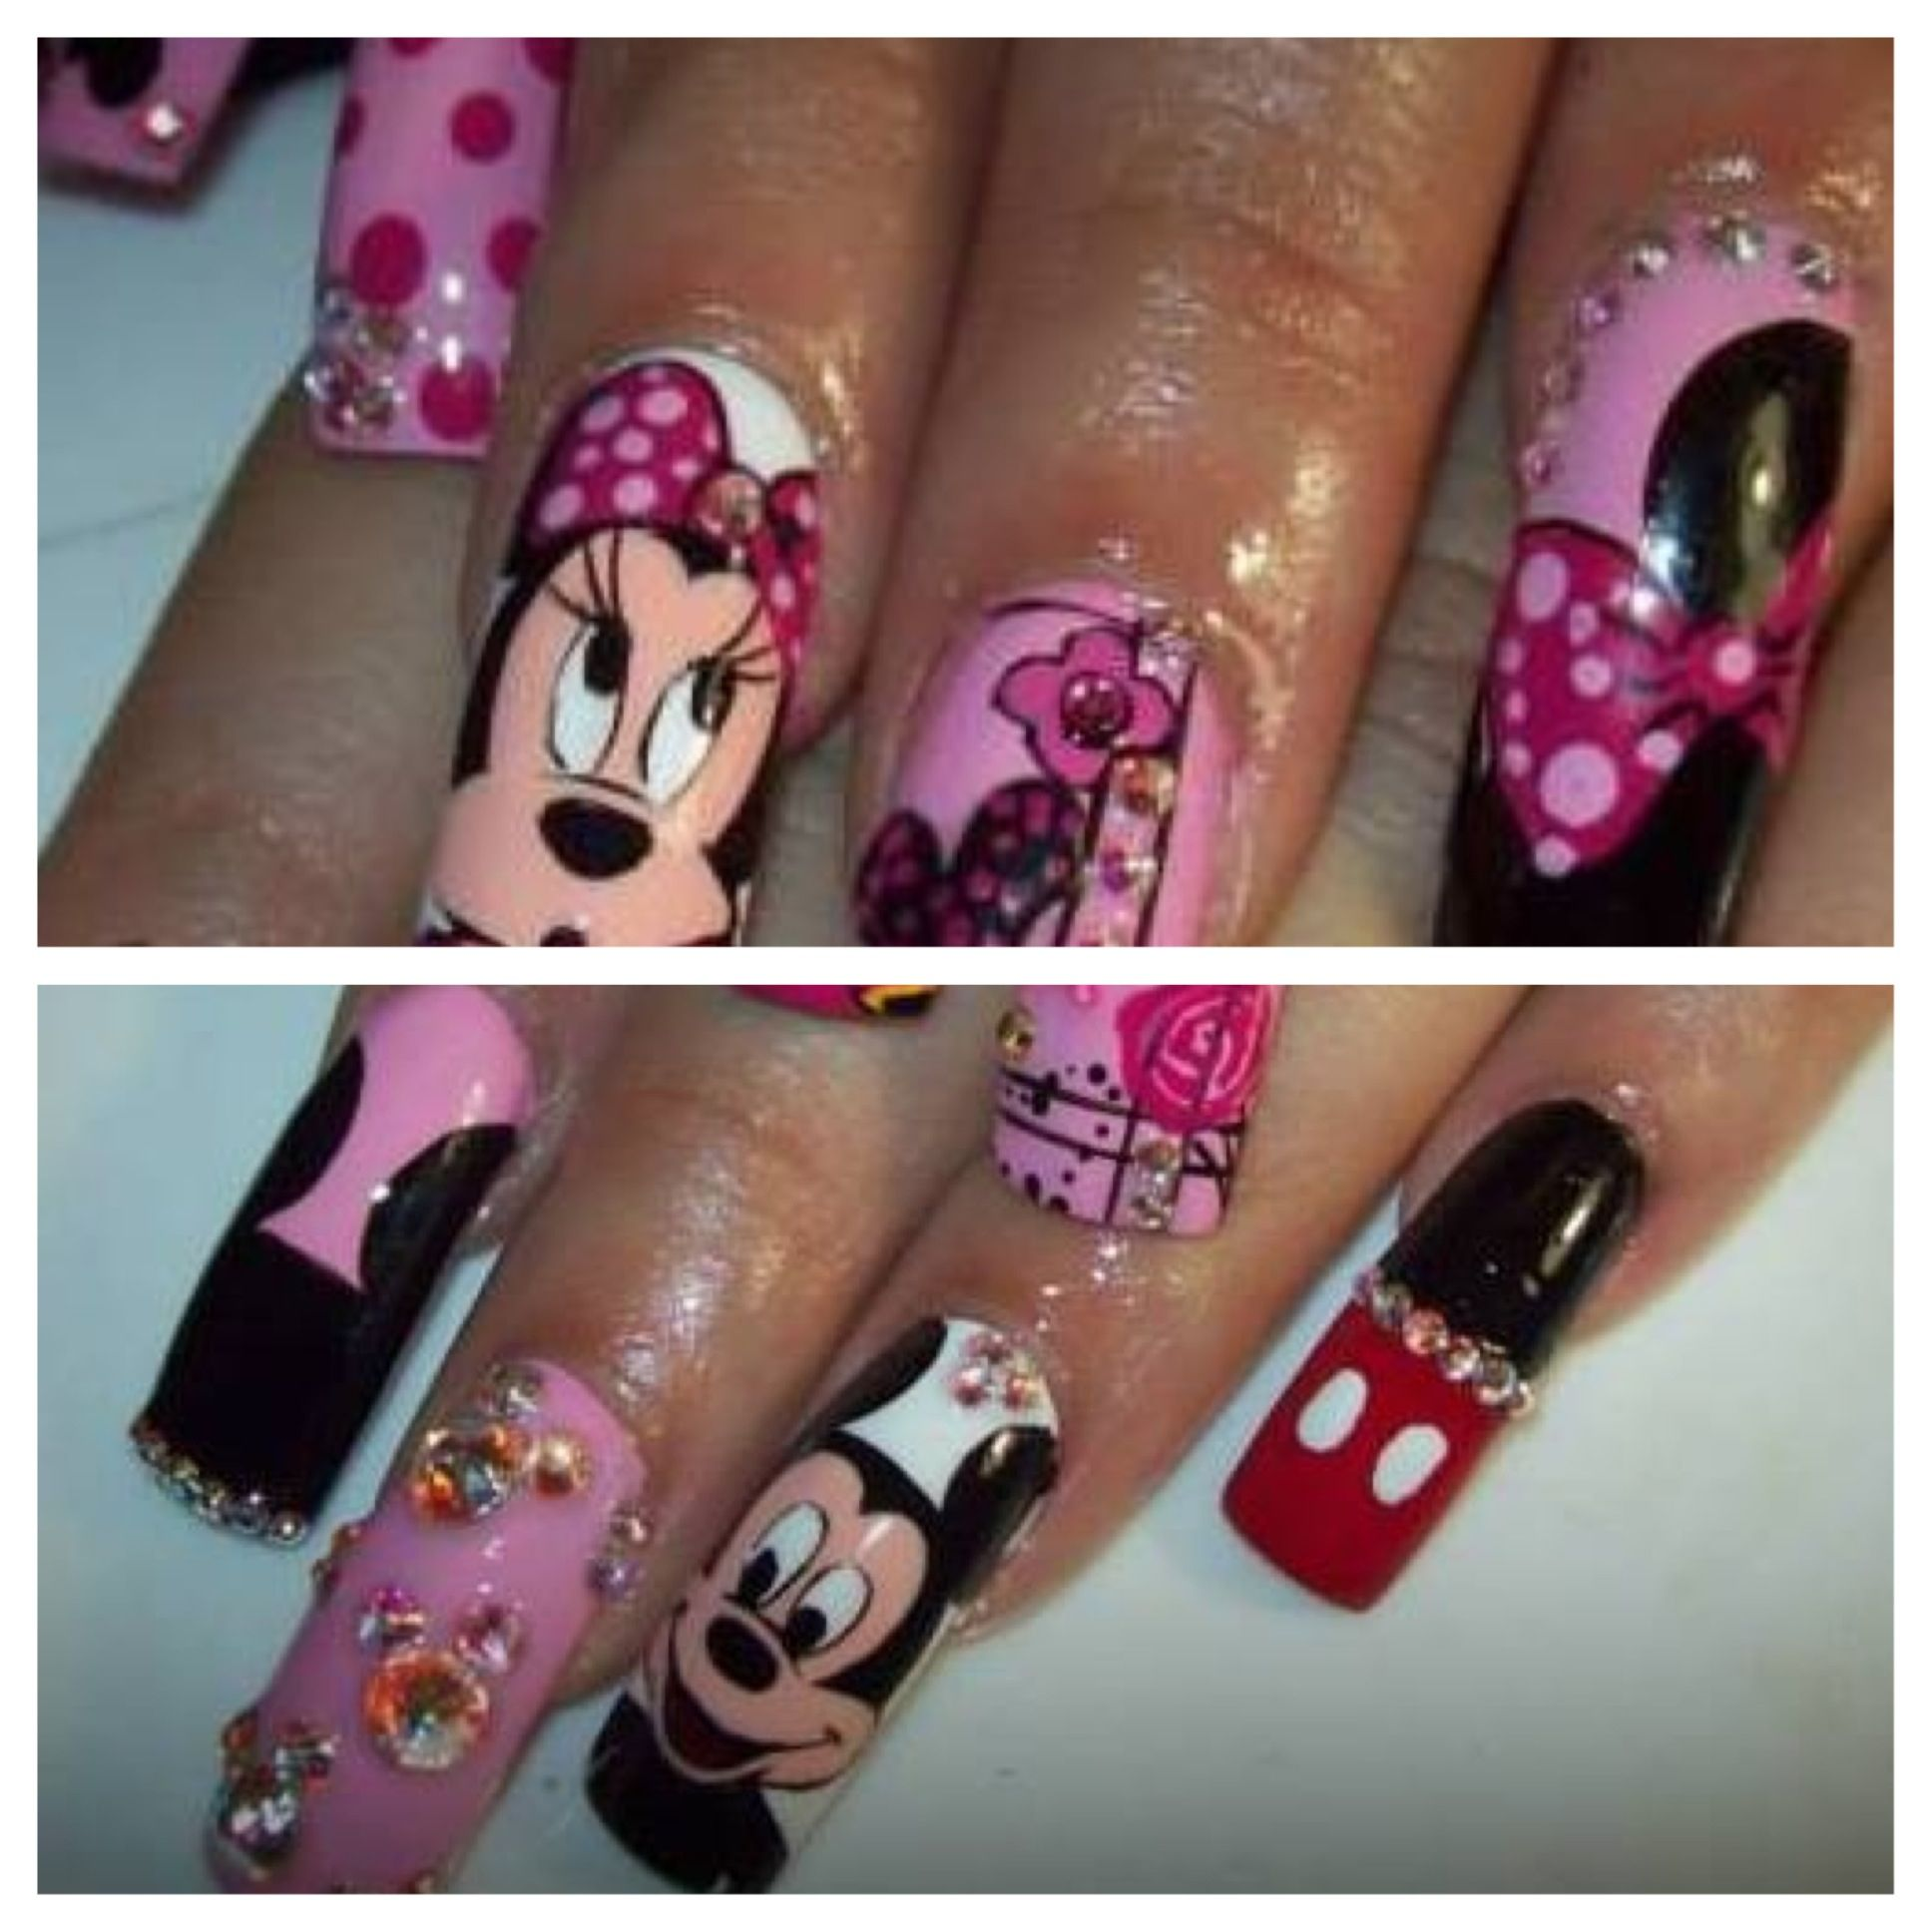 Mickey and Minnie mouse nails | Nails by me | Pinterest